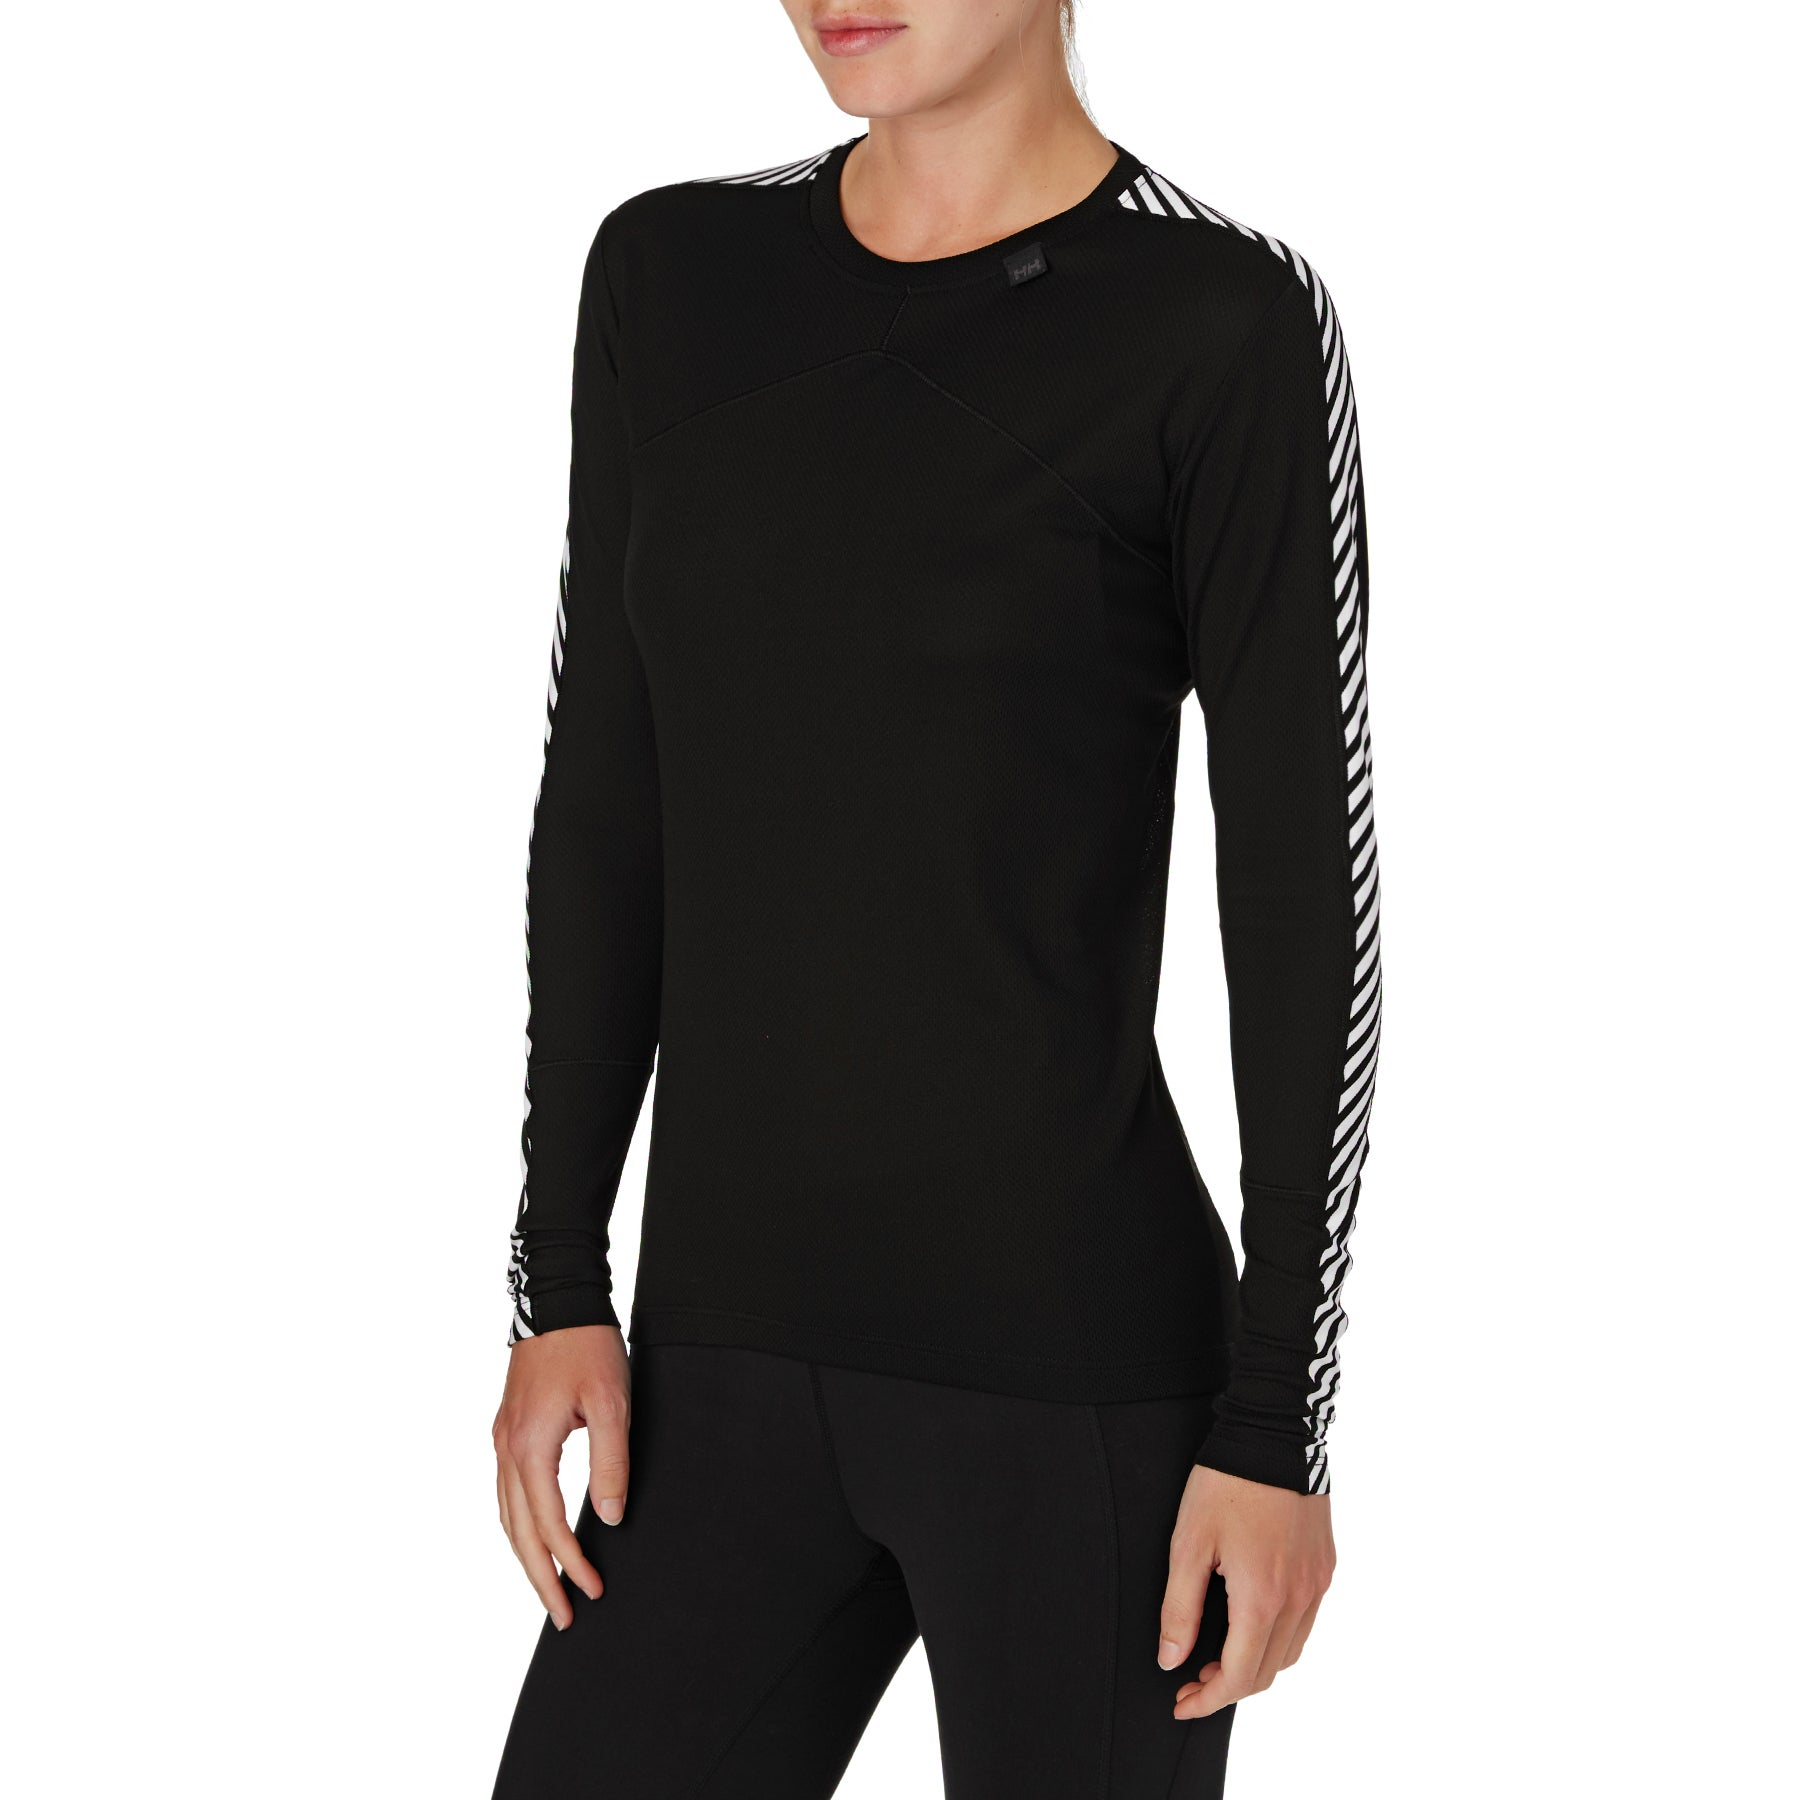 Helly Hansen Lifa Thermal Crew LS Womens Base Layer Top - Black